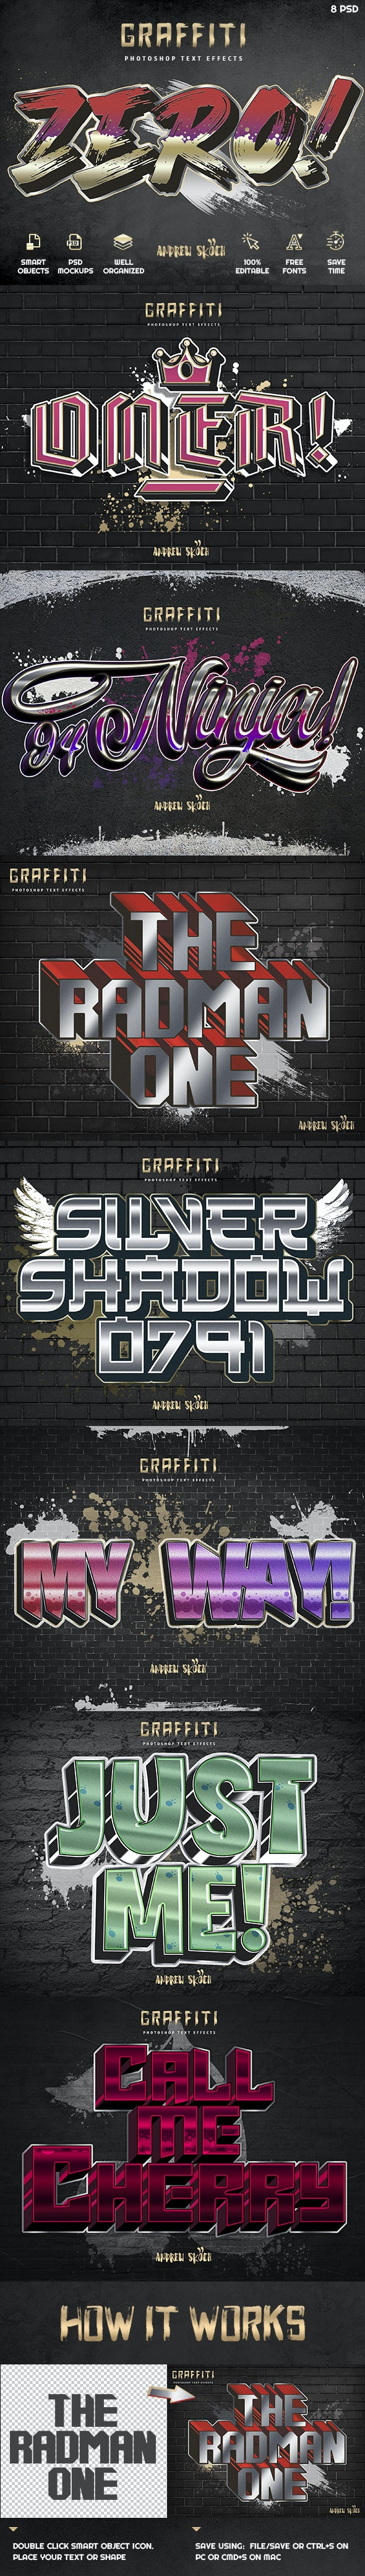 Graffiti Text Effects vol 4 - Text Effects Actions